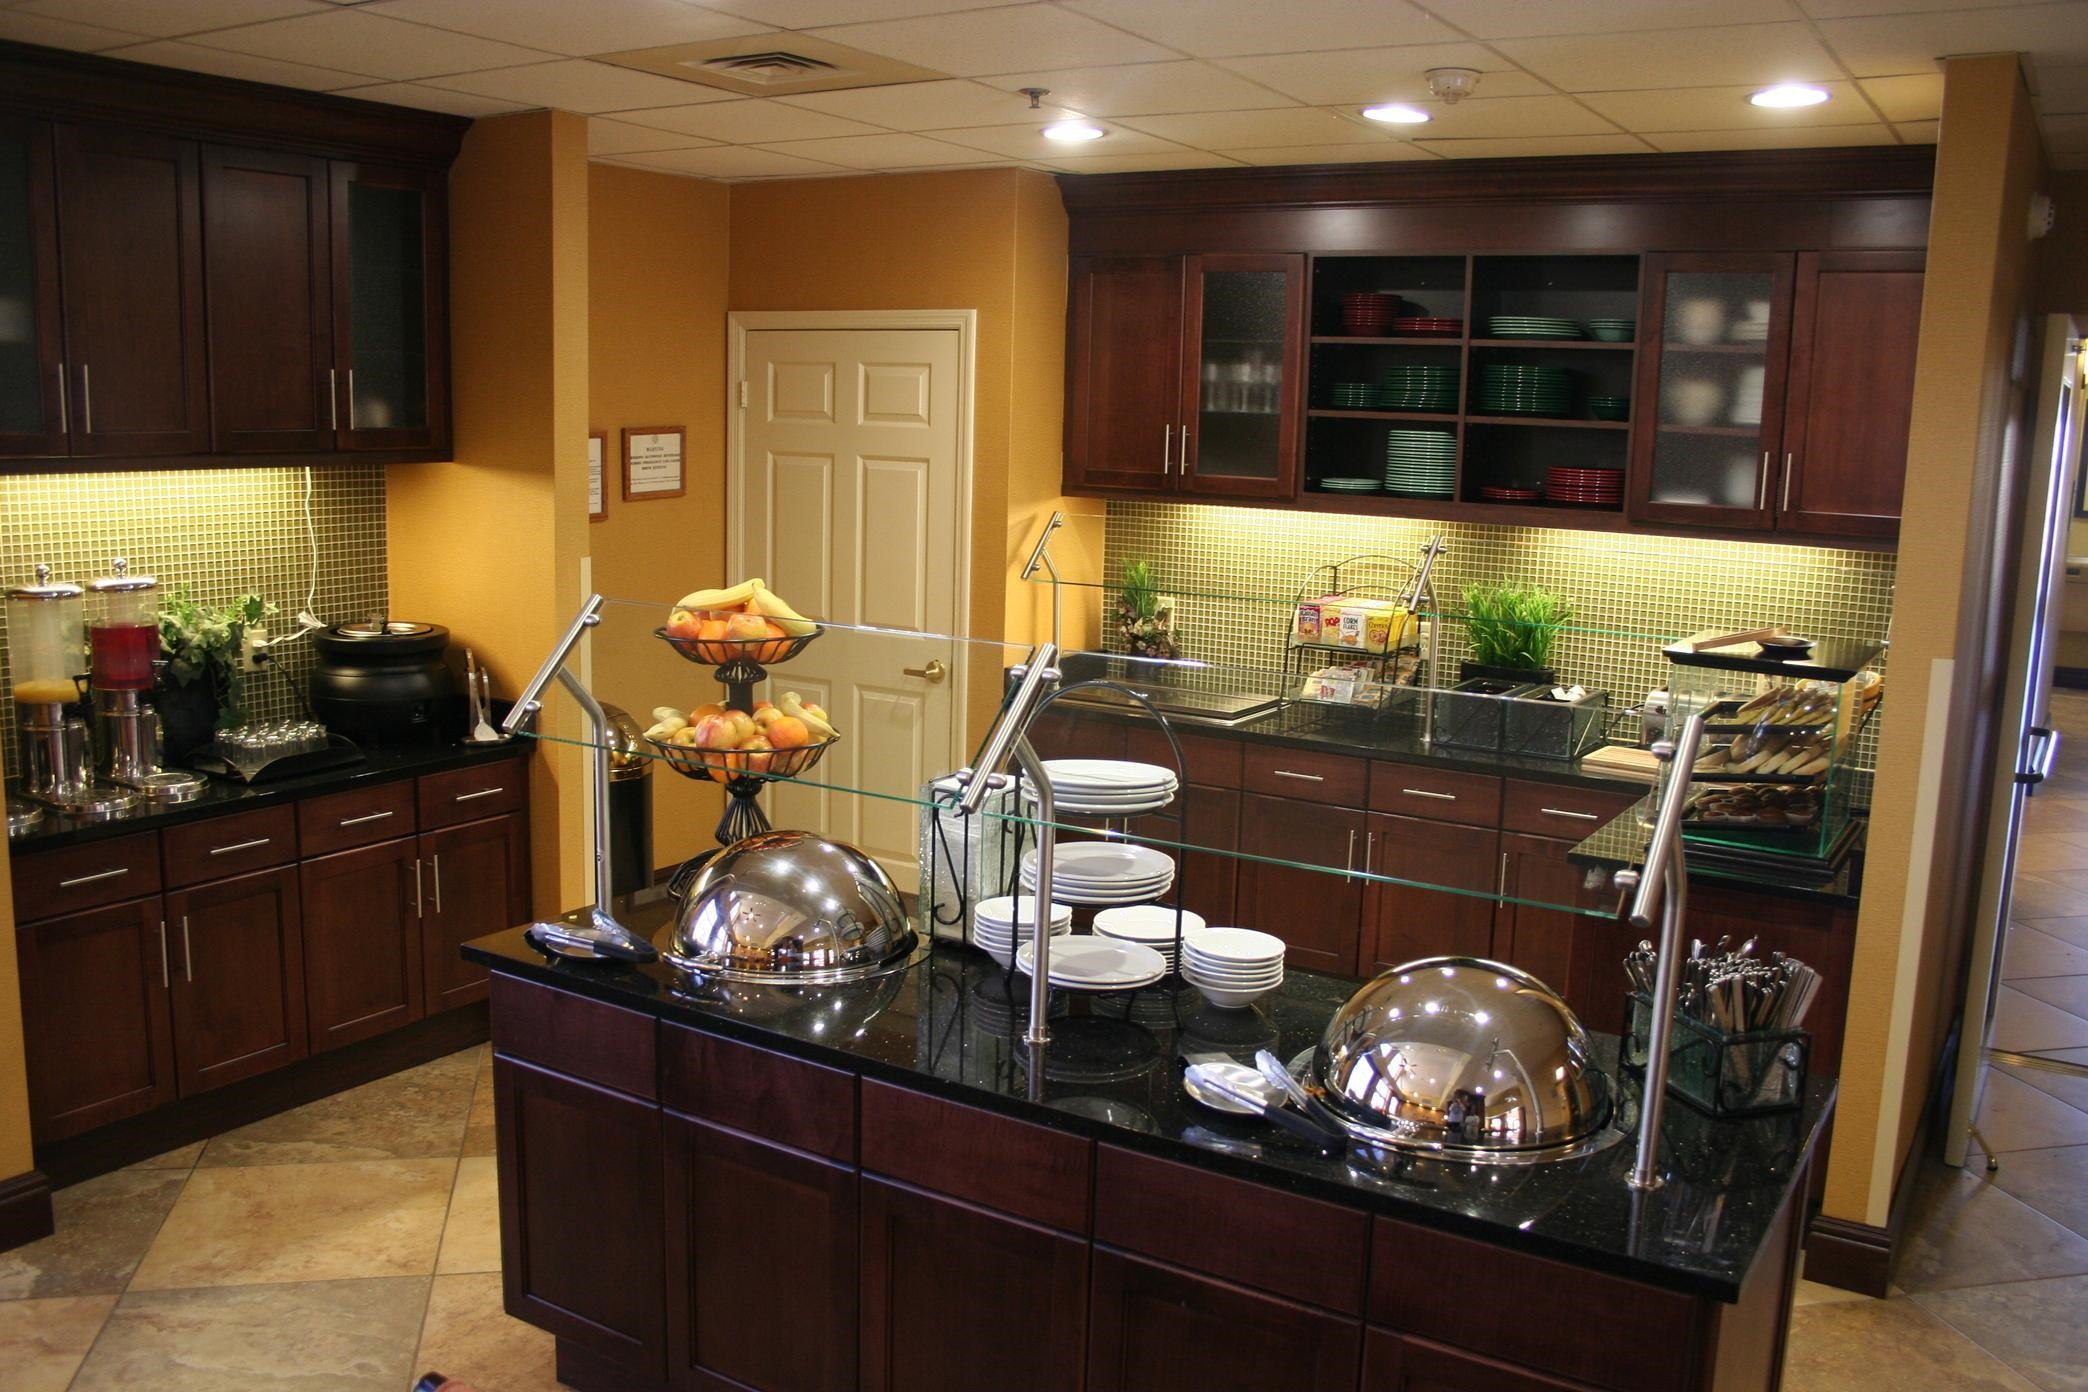 Hotels business in Augusta, GA, United States